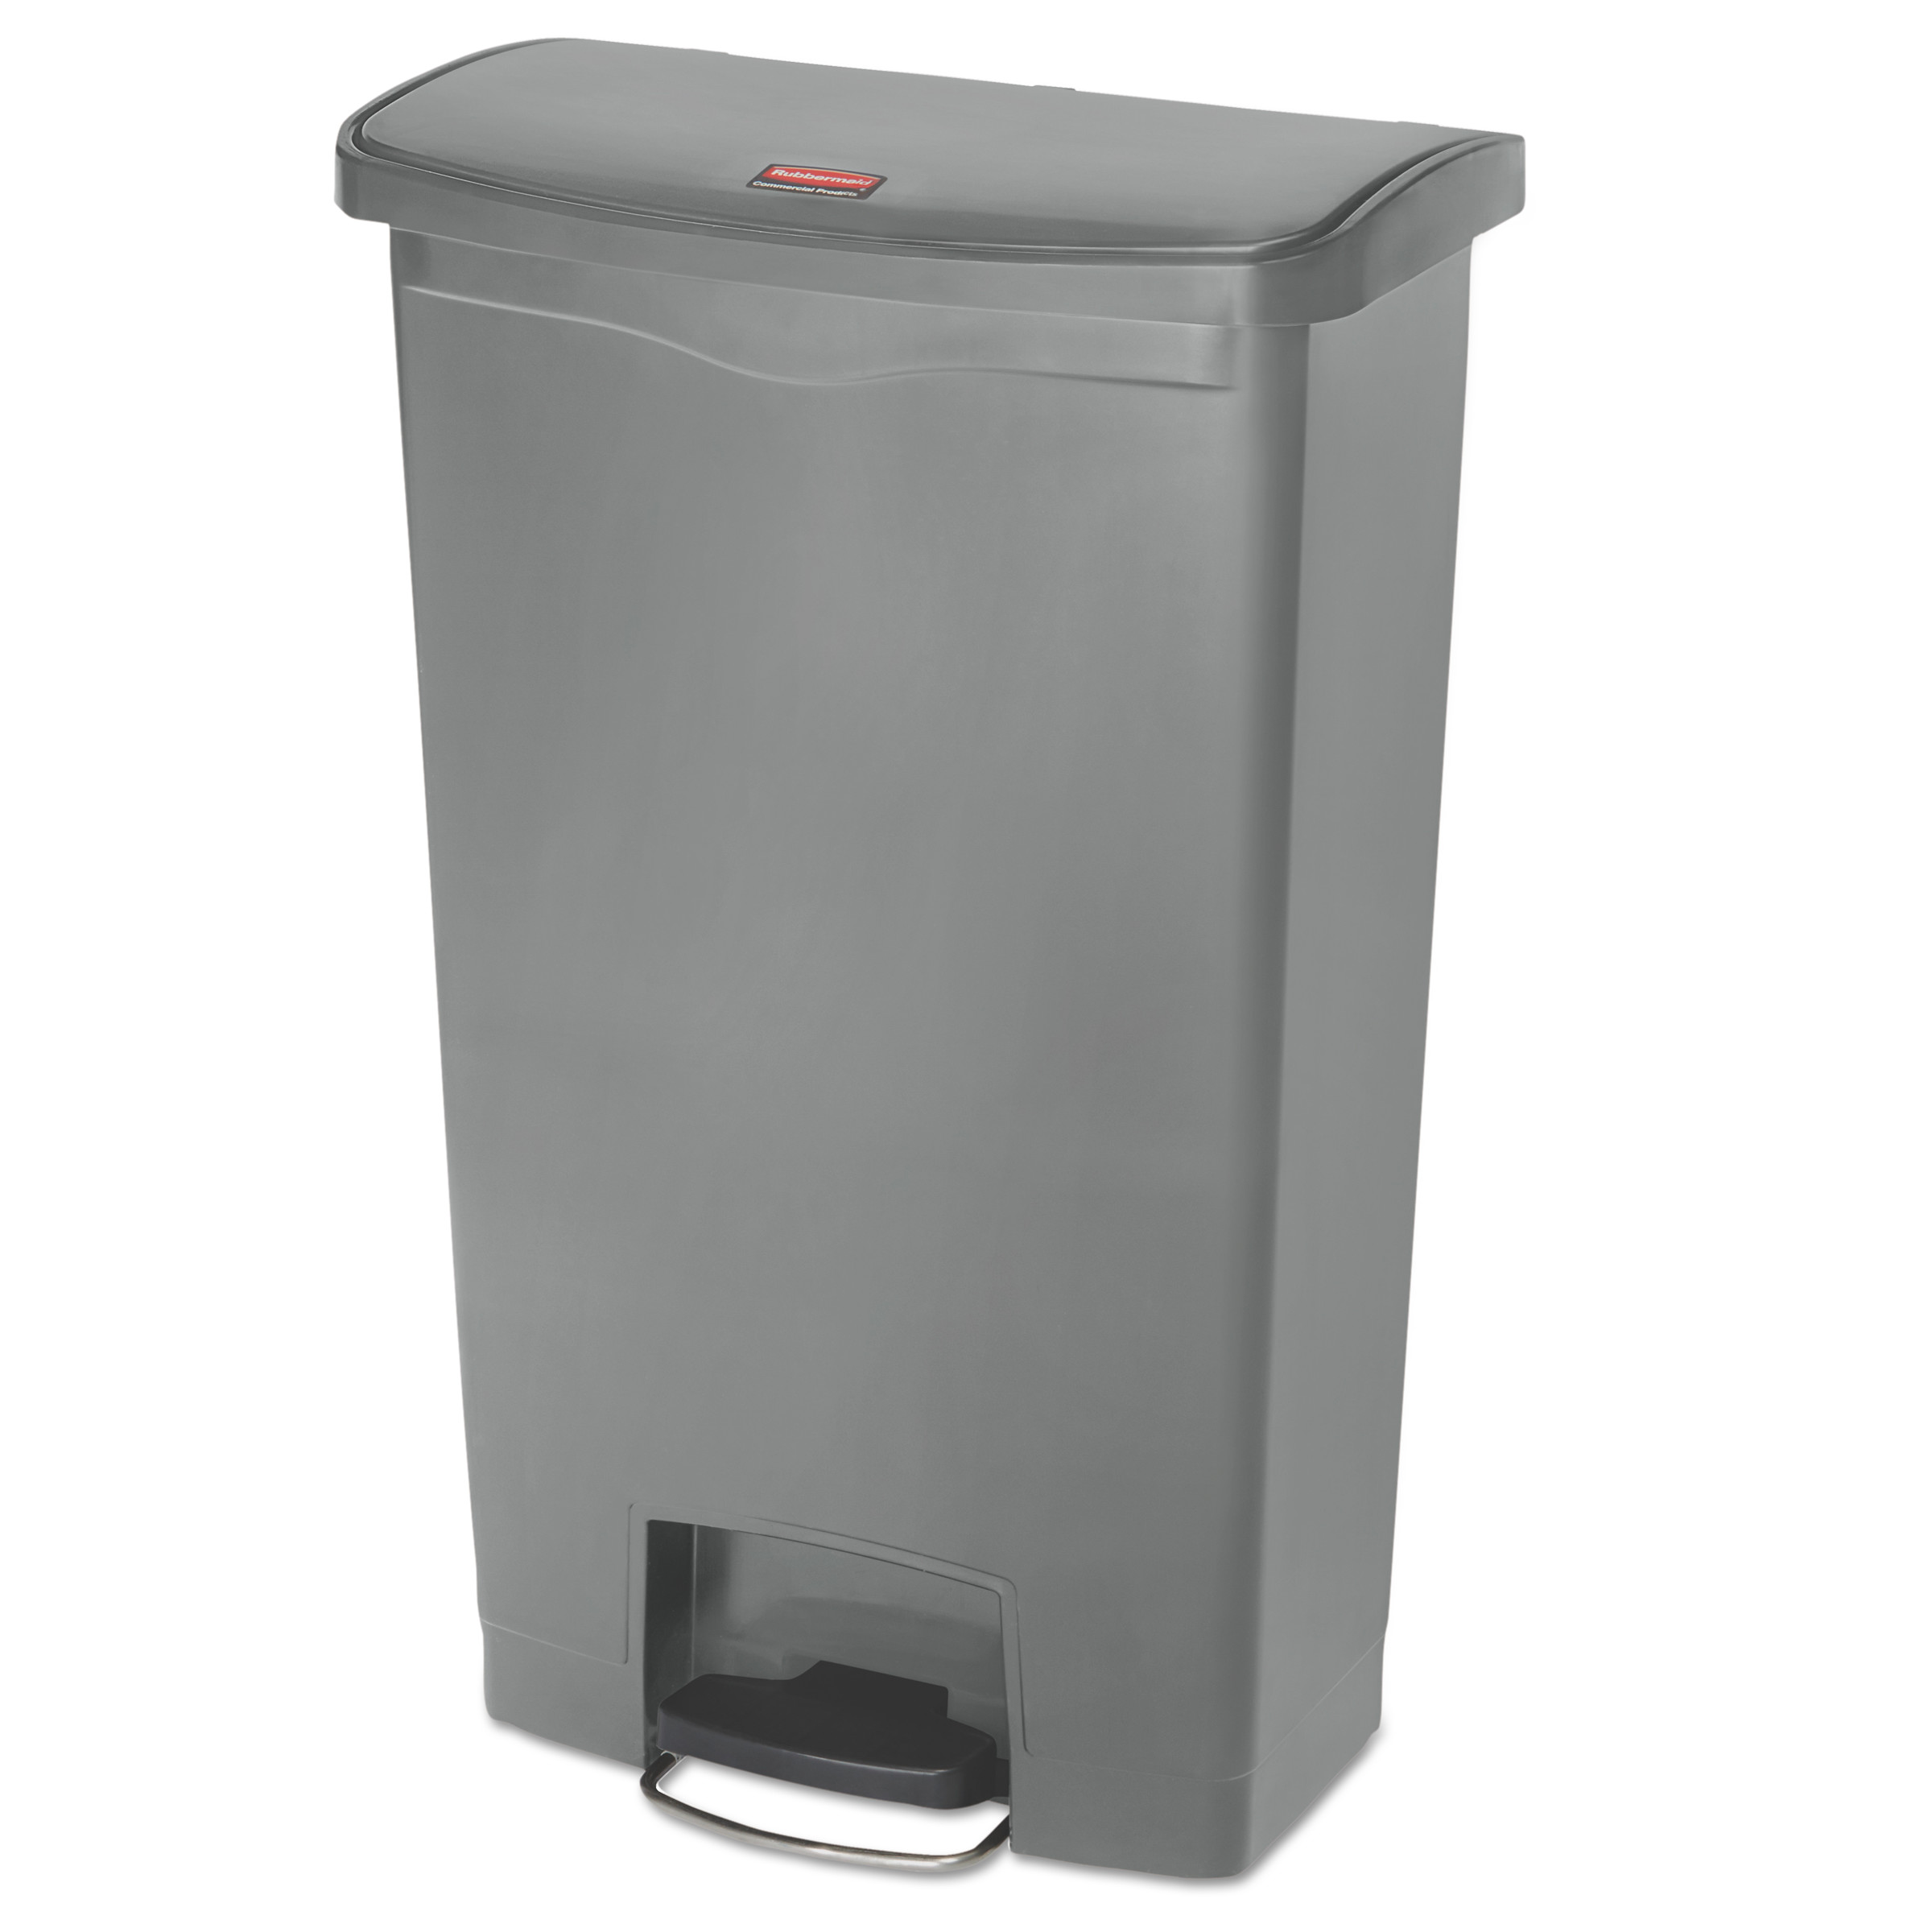 Rubbermaid Commercial Slim Jim Resin Step-On Container, Front Step Style, 18 gal, Gray